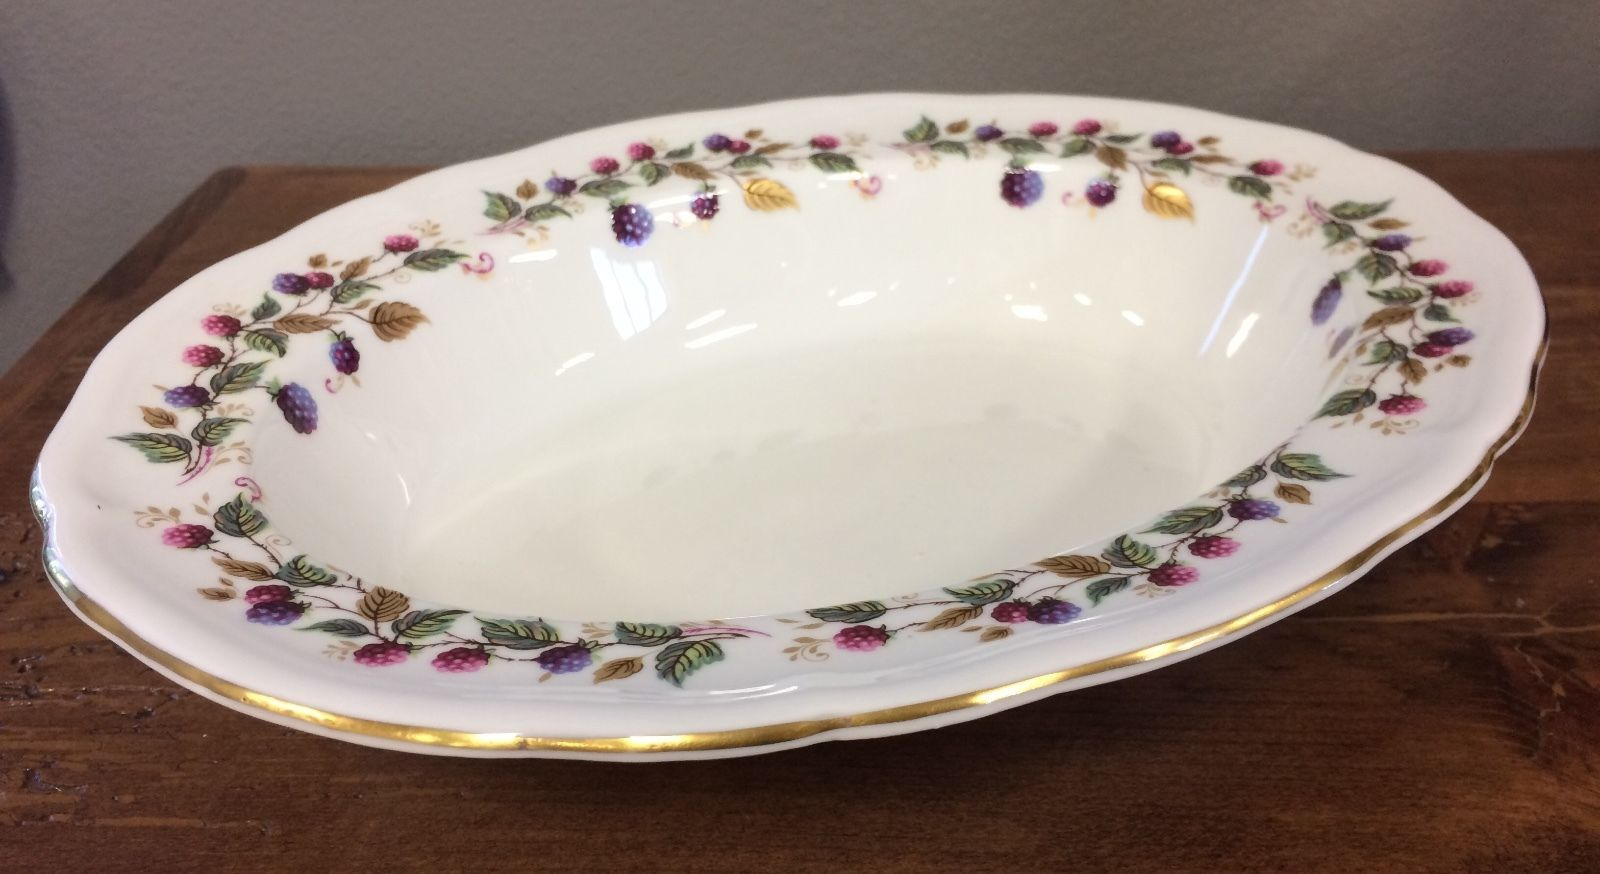 Aynsley Bramble Time Oval Serving Bowl Berries Scalloped Porcelain England RARE! image 3